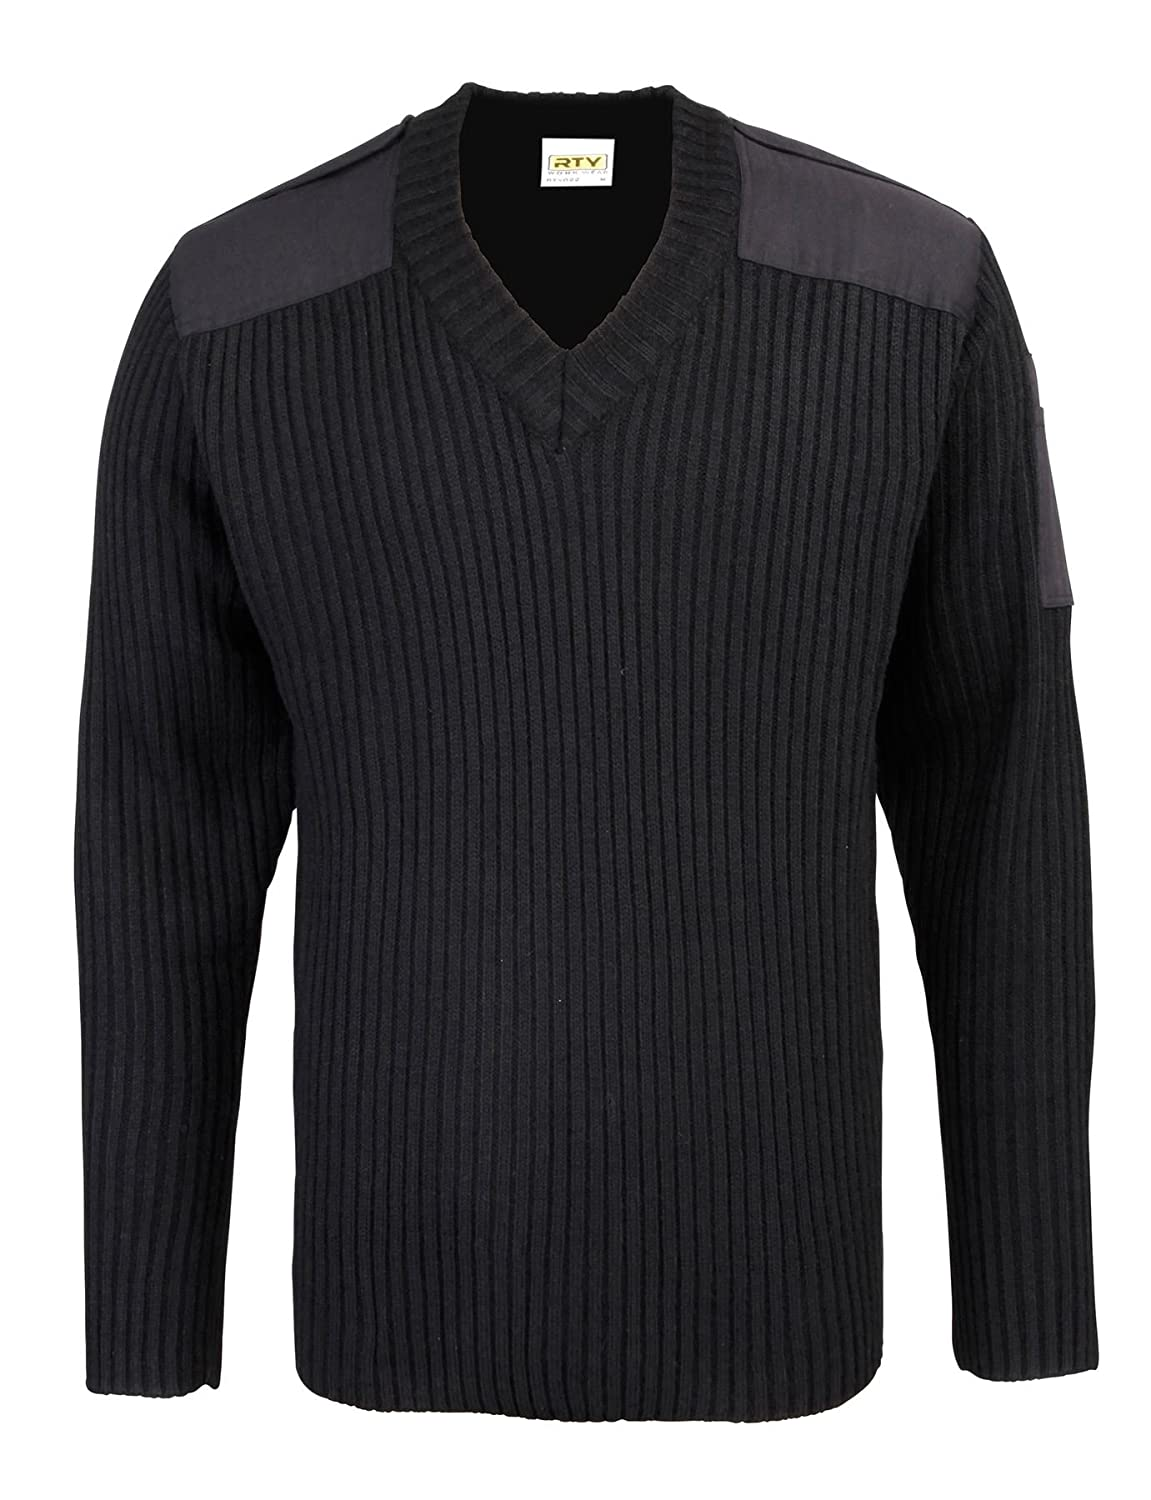 RTY-Mens-Security style v-neck sweater